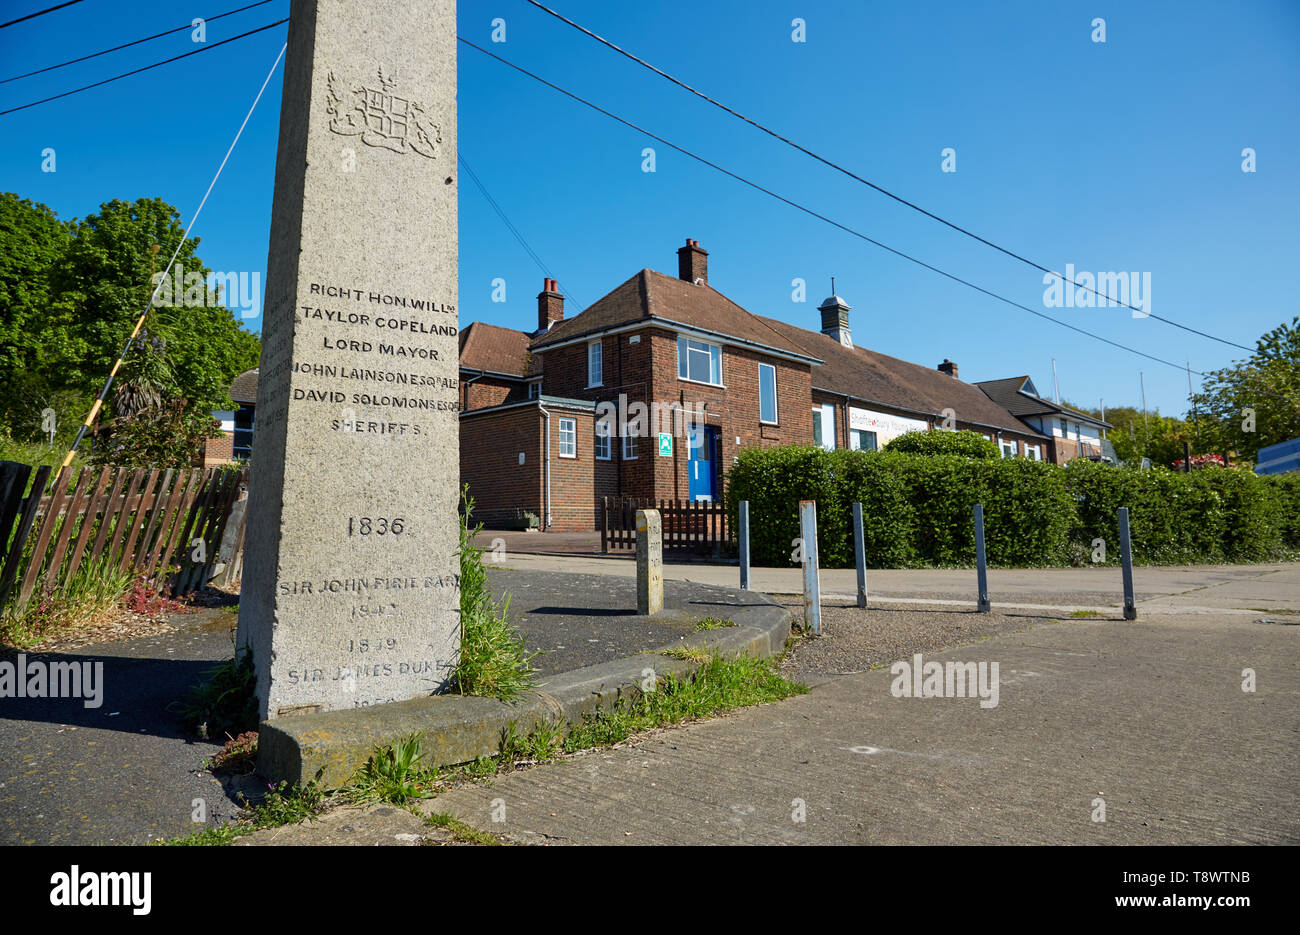 Photograph of the London Stone at Lower Upnor, Kent,UK. With the Arethusa training centre in the background. - Stock Image